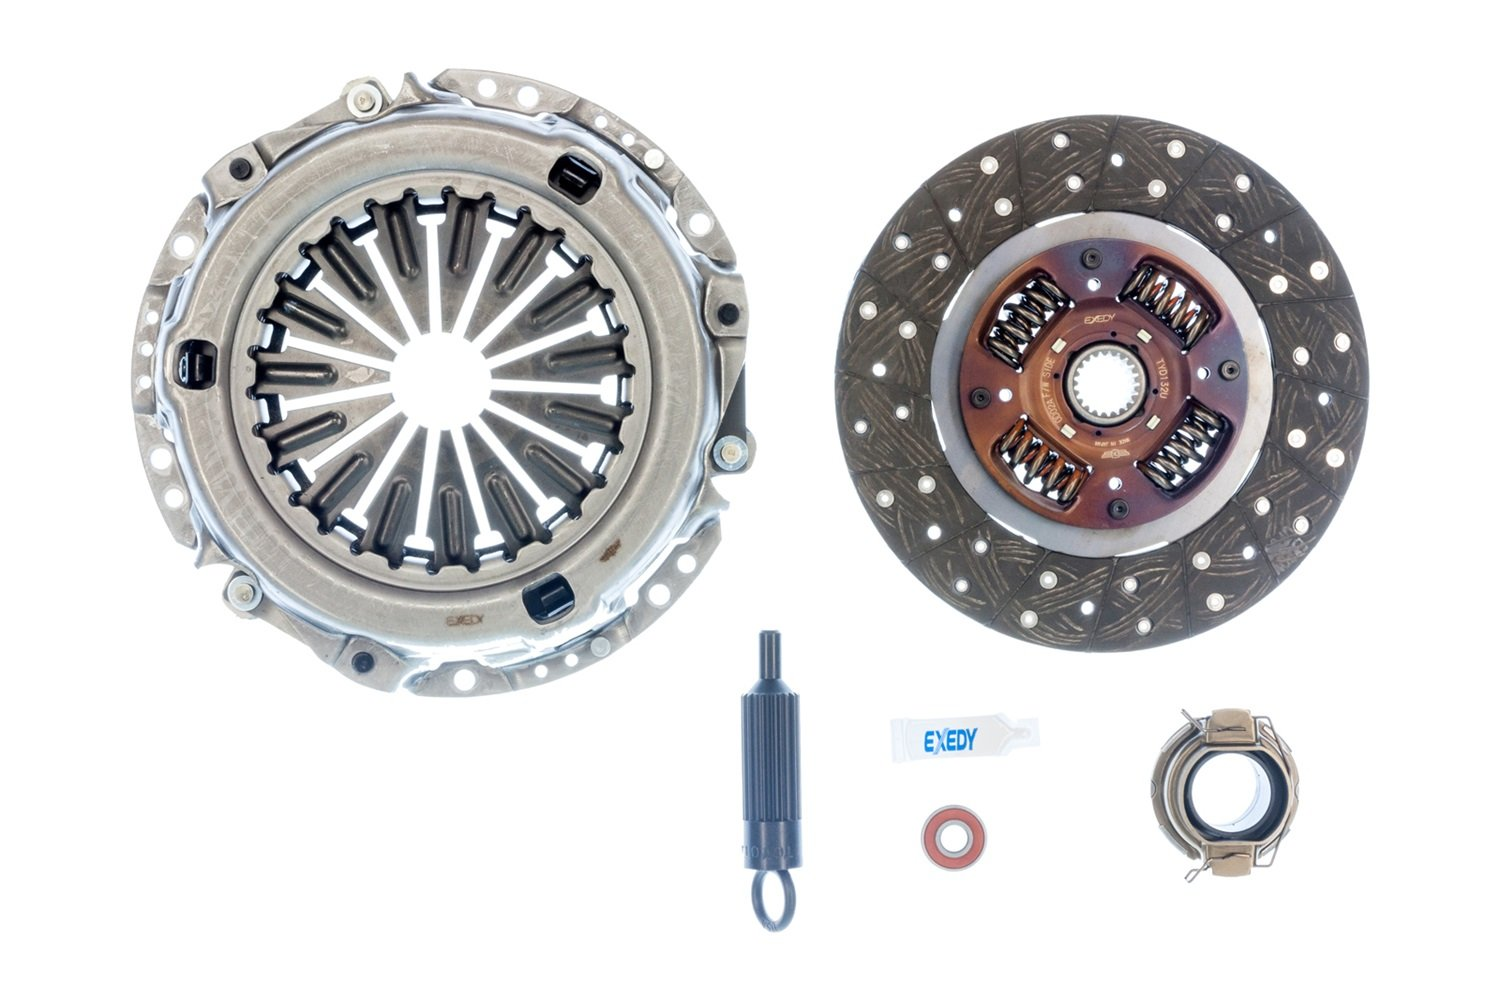 EXEDY 16087 OEM Replacement Clutch Kit by Exedy